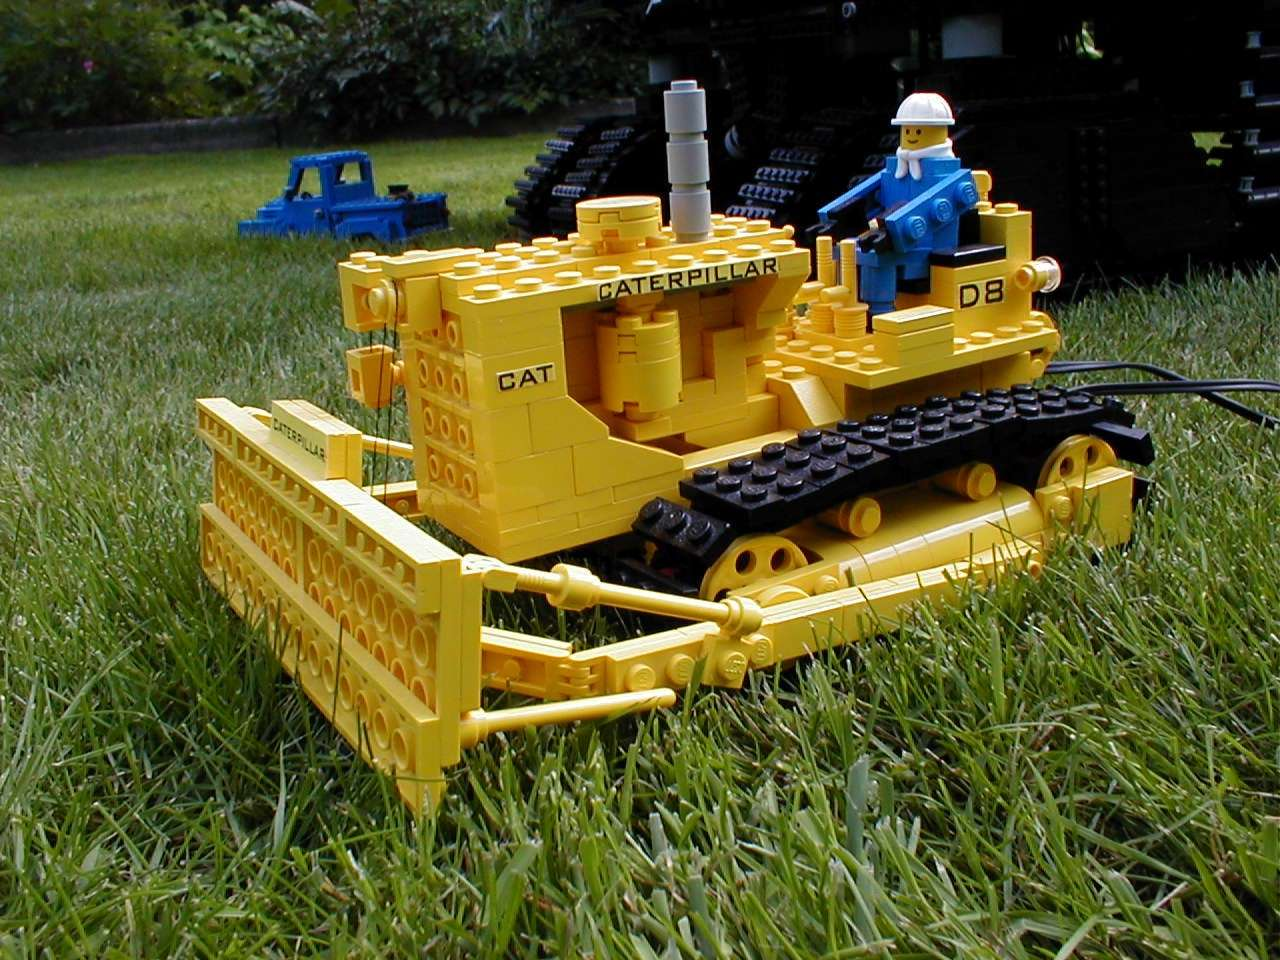 100+ Cat D8 Dozer Specifications For 36a – yasminroohi